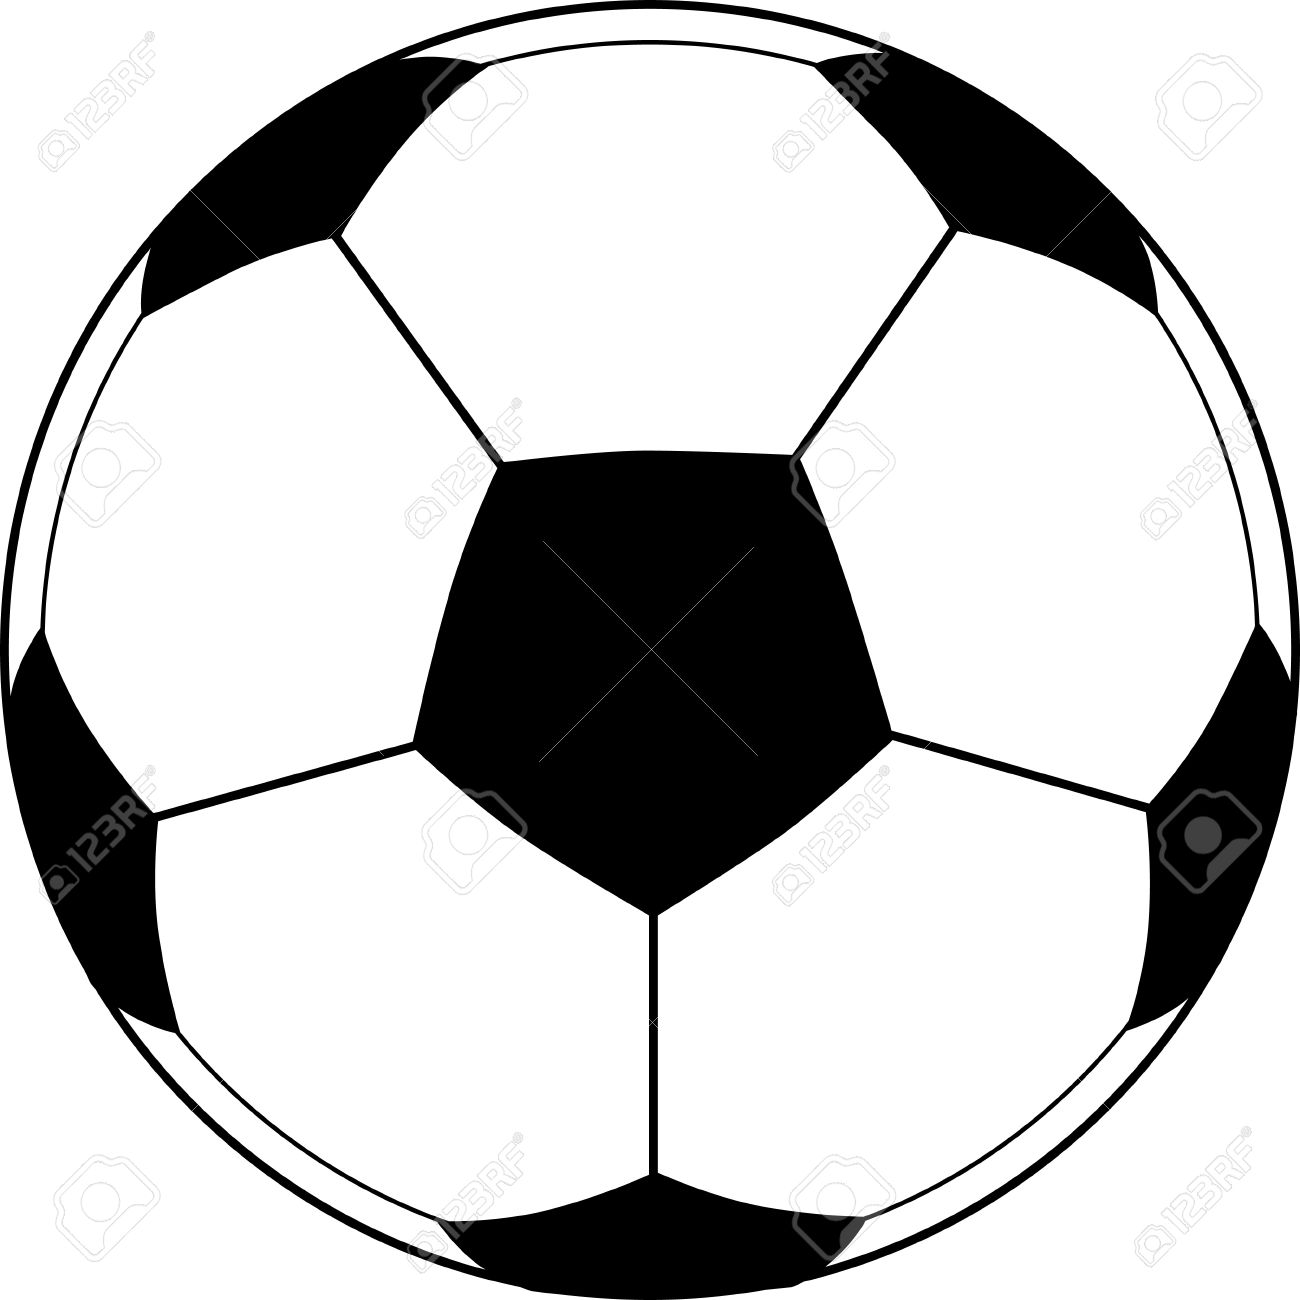 soccer ball royalty free cliparts vectors and stock illustration rh 123rf com soccer ball vector file soccer ball vector download